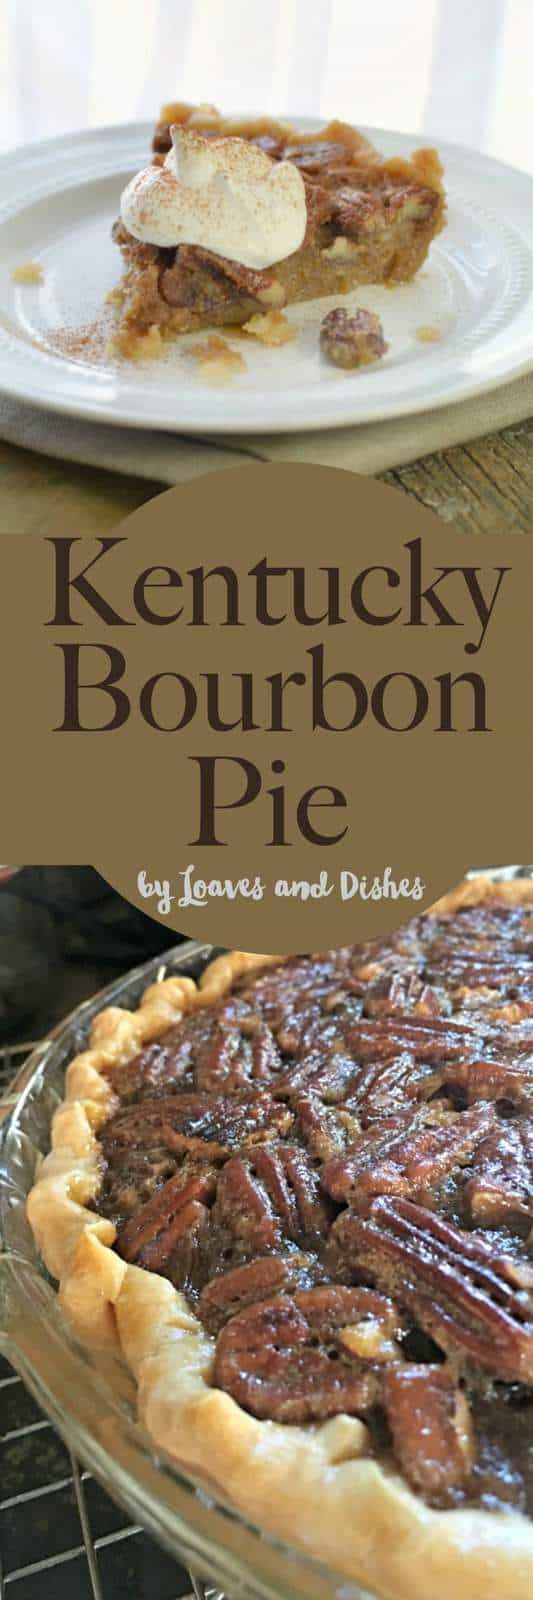 This recipe for Kentucky Bourbon Pie is straight out of the deep south mixing Pecans, Whiskey (Bourbon) and whipped cream into a boozy delight.  Just like Pioneer Woman or Paula Deen would make only boozy!  Let your southerner sing with this delicious pie.